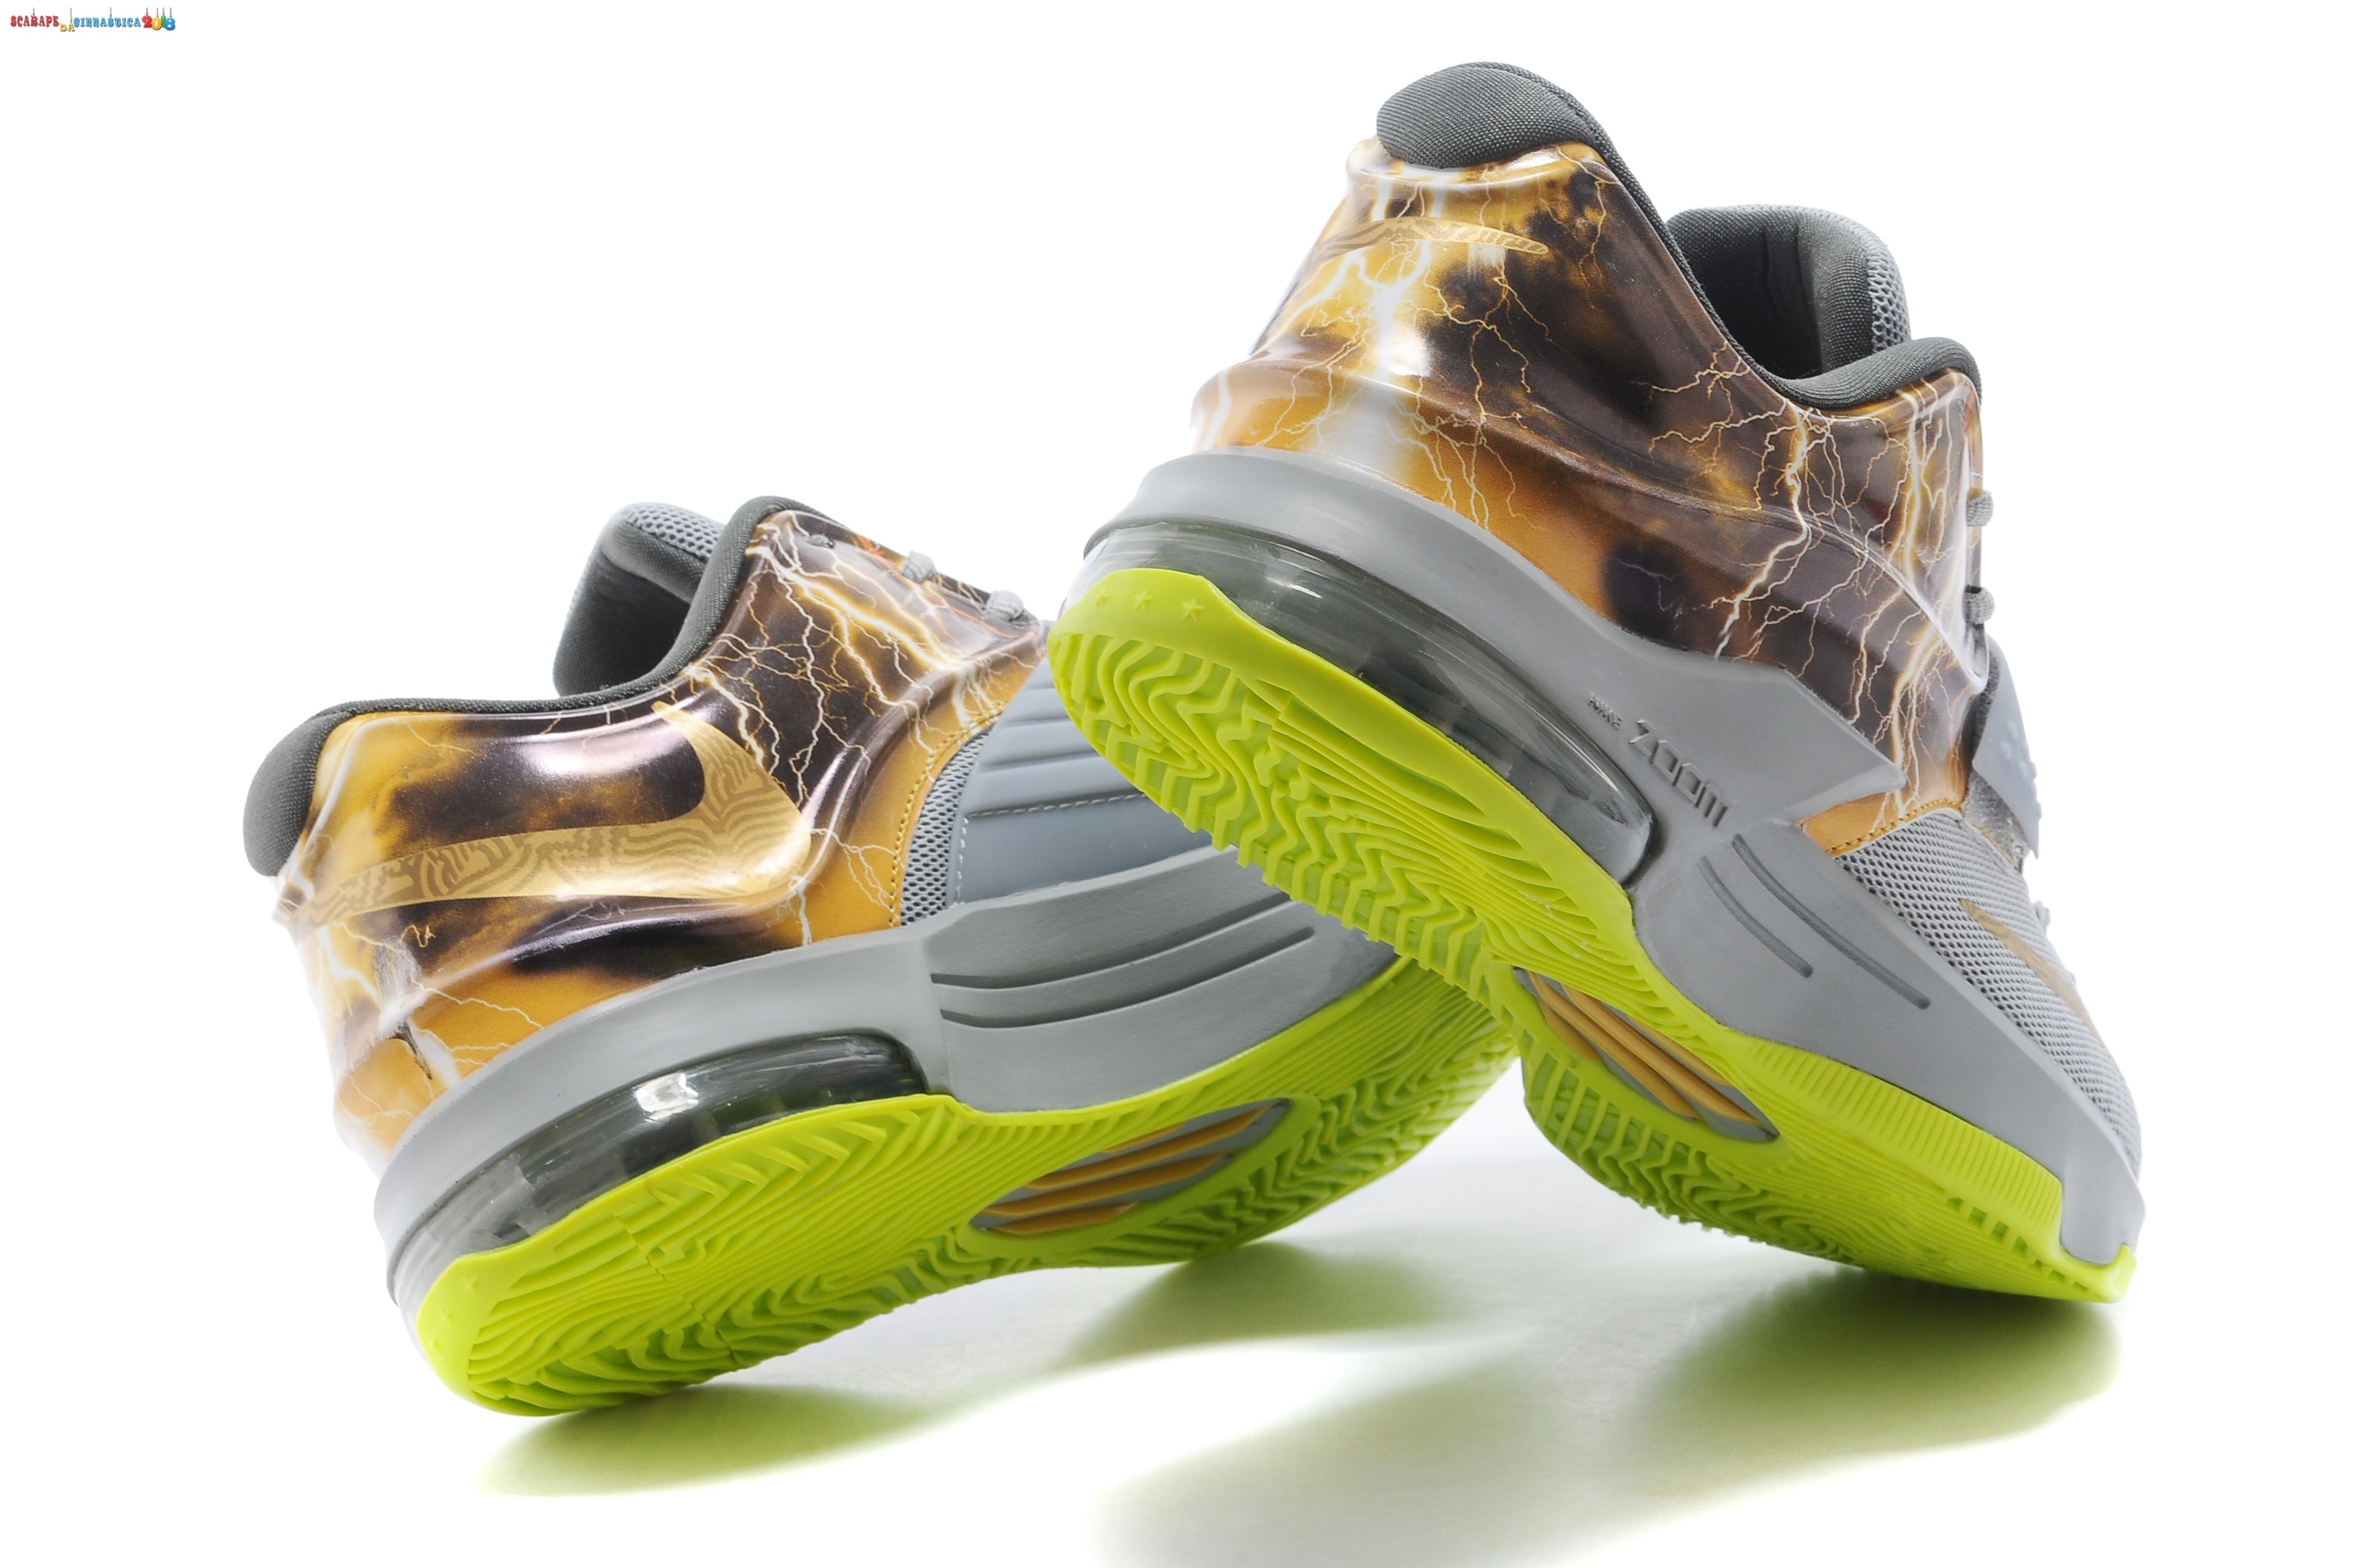 nike kd 7 elite uomo marrone